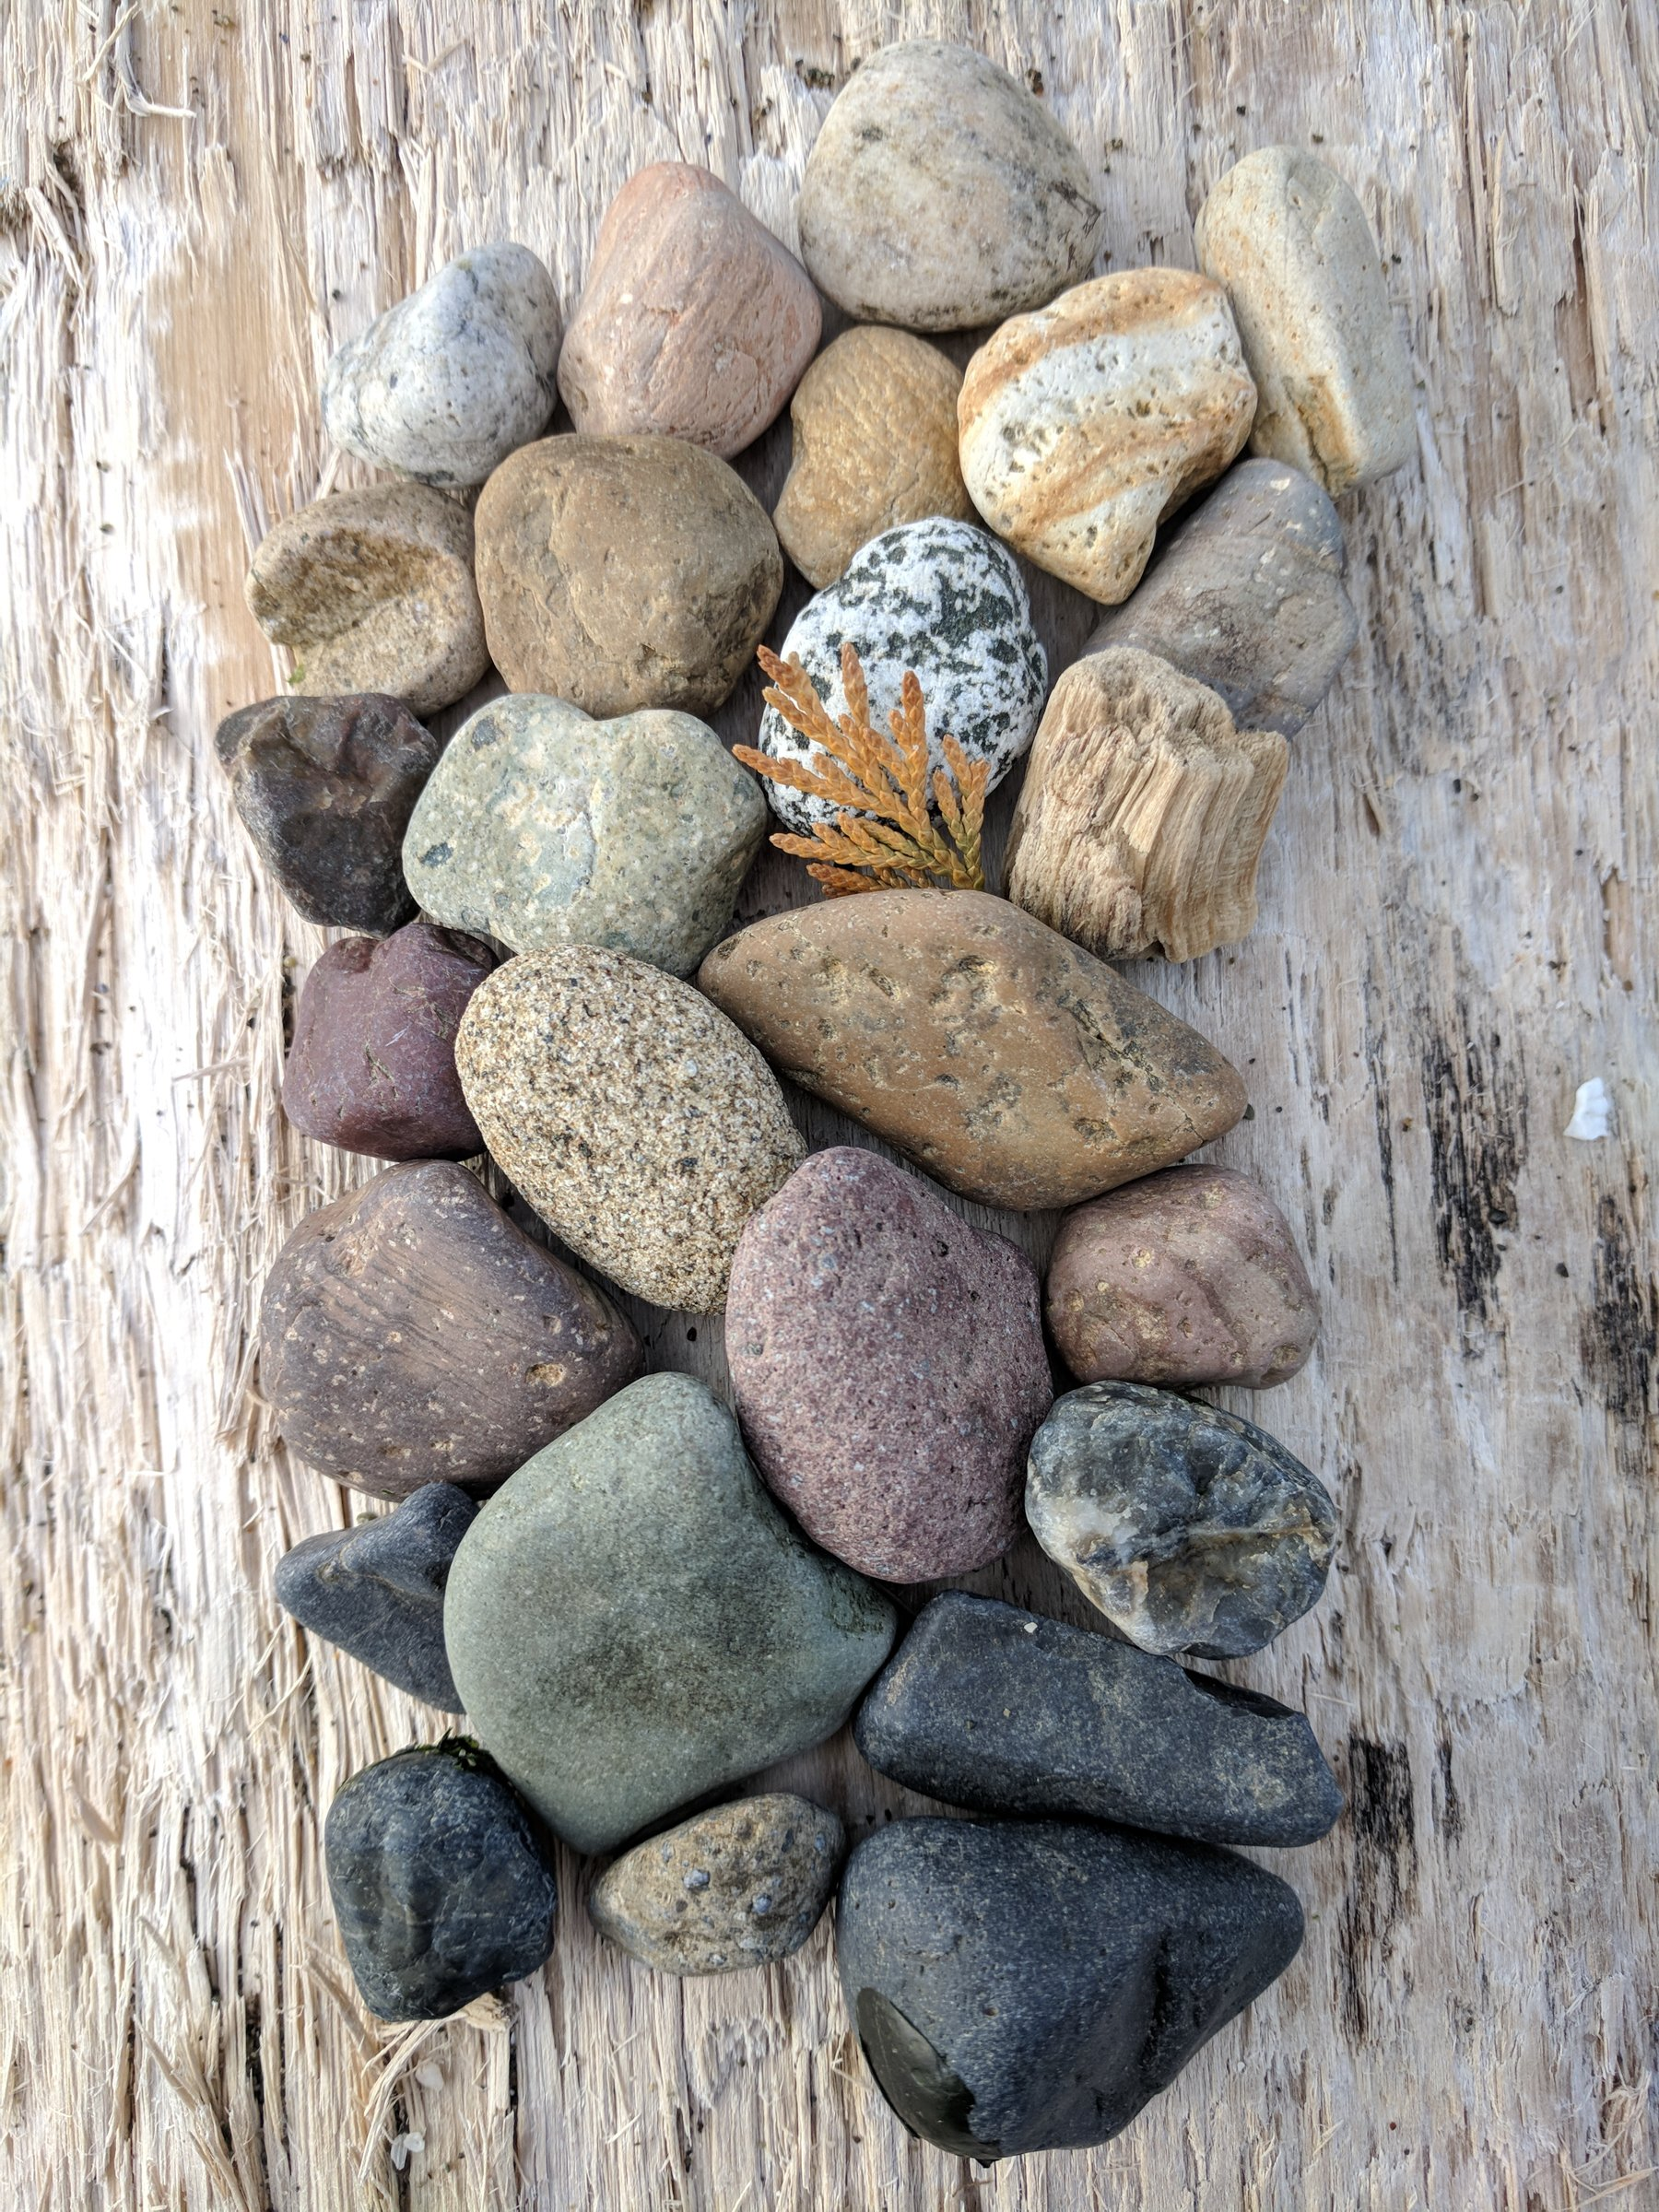 Colorful rocks arranged in a mosaic on a piece of driftwood, an example of one of my favorite things to do on the beach in the winter.